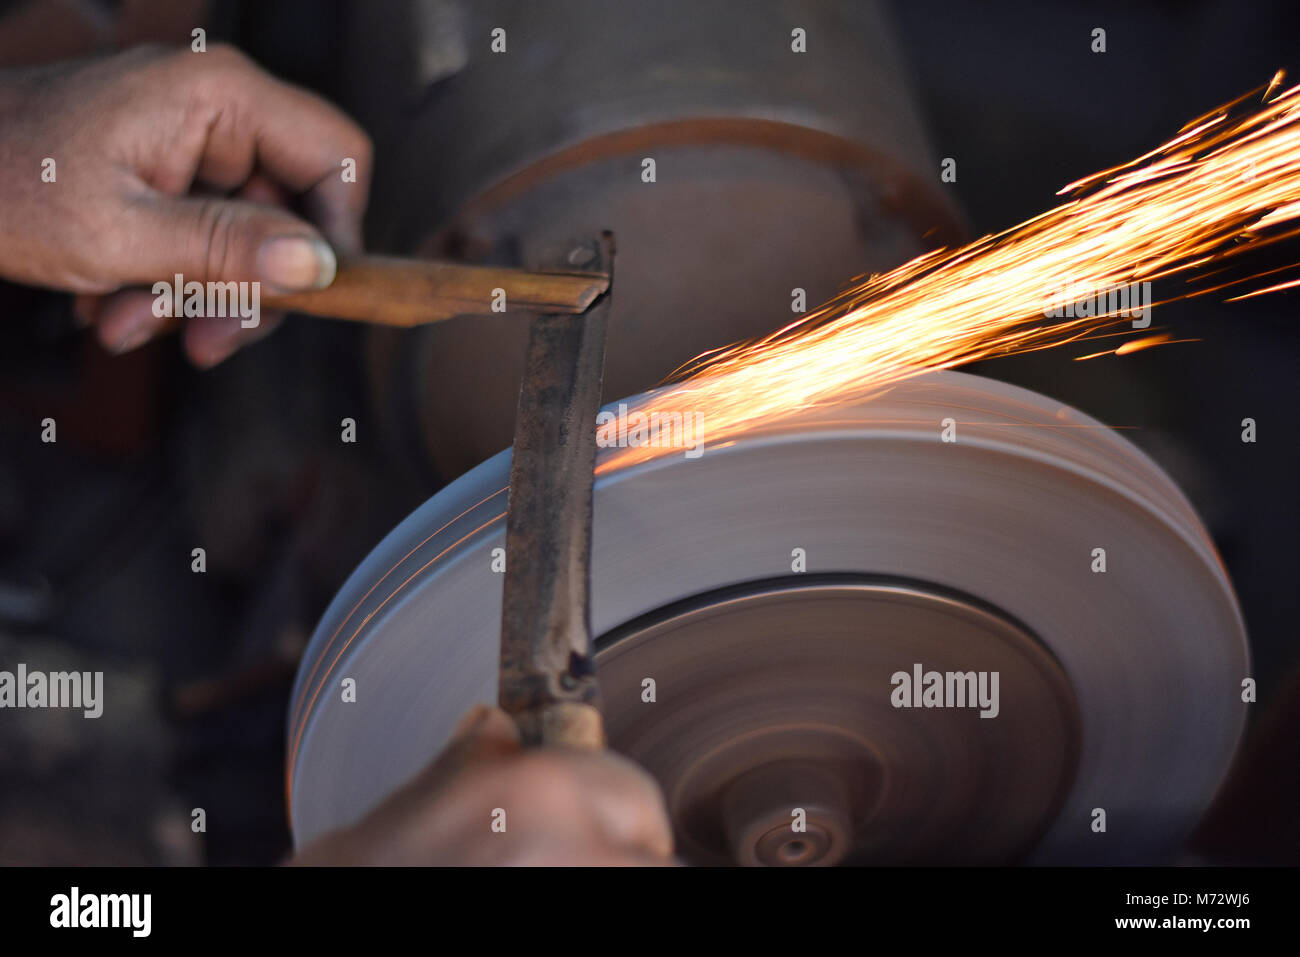 Man grinding on abrasive cutting and knife-sharpening stones. Mumbai, Maharashtra, India - Stock Image